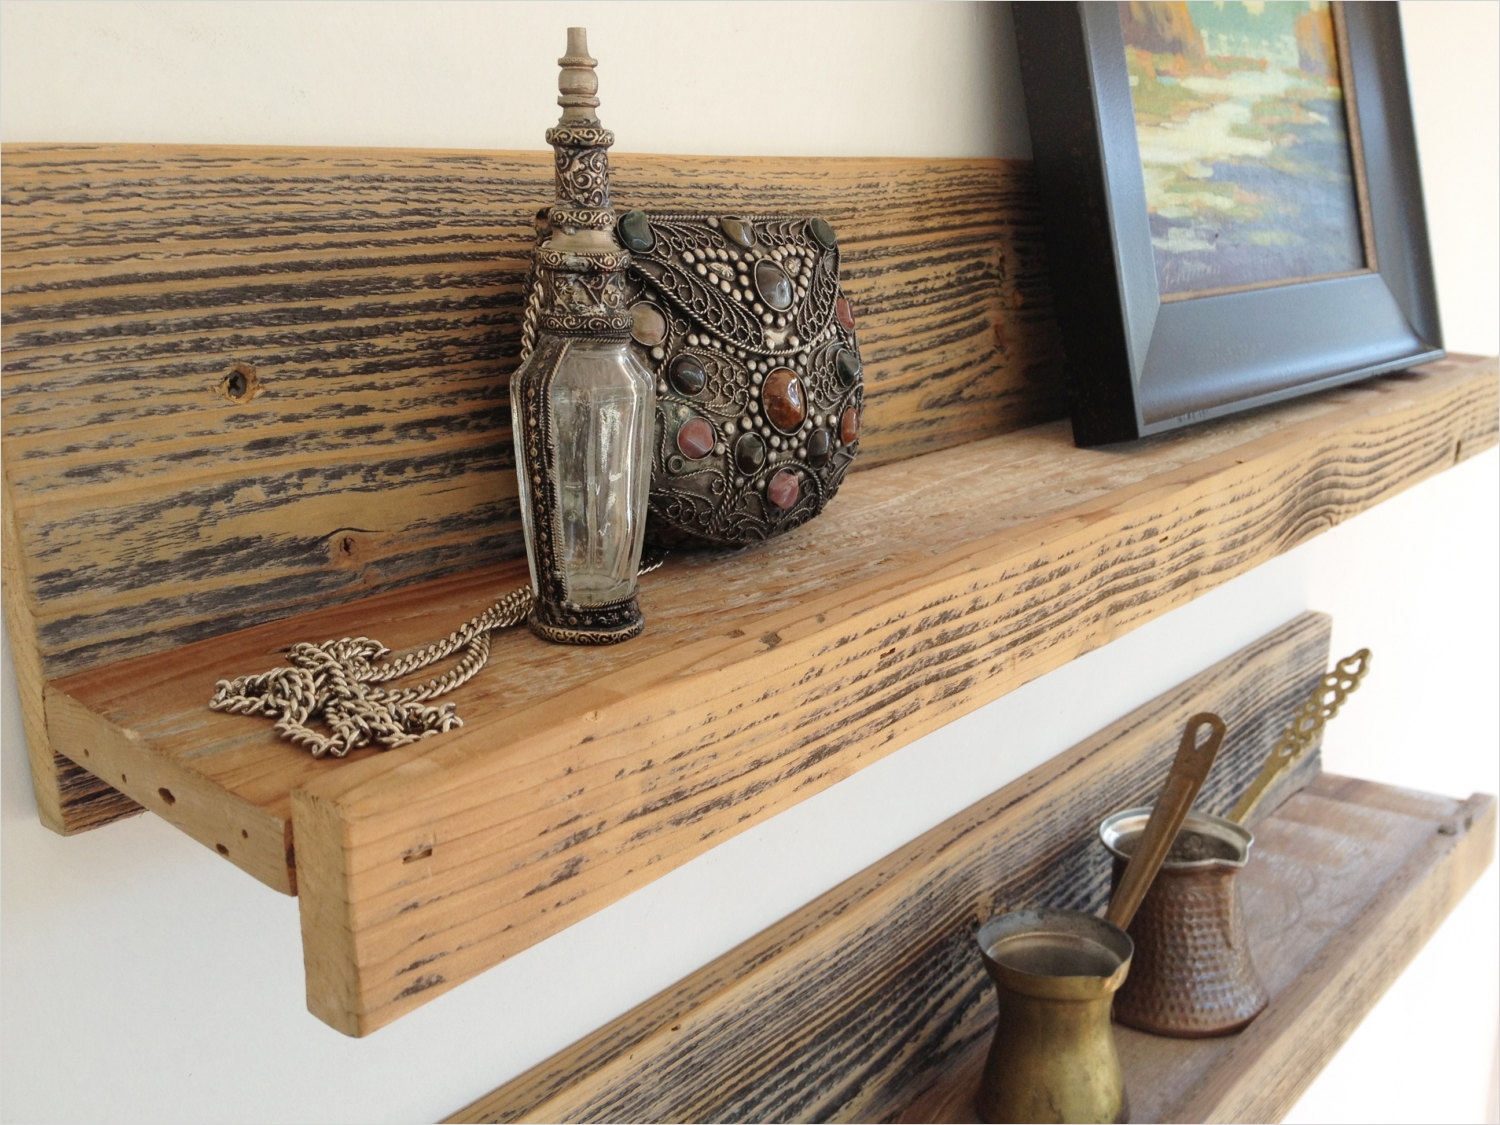 45 Creative Rustic Wall Mounted Bookshelves 23 24 Inch Rustic Reclaimed Wood Shelf for Home Studio Office 2